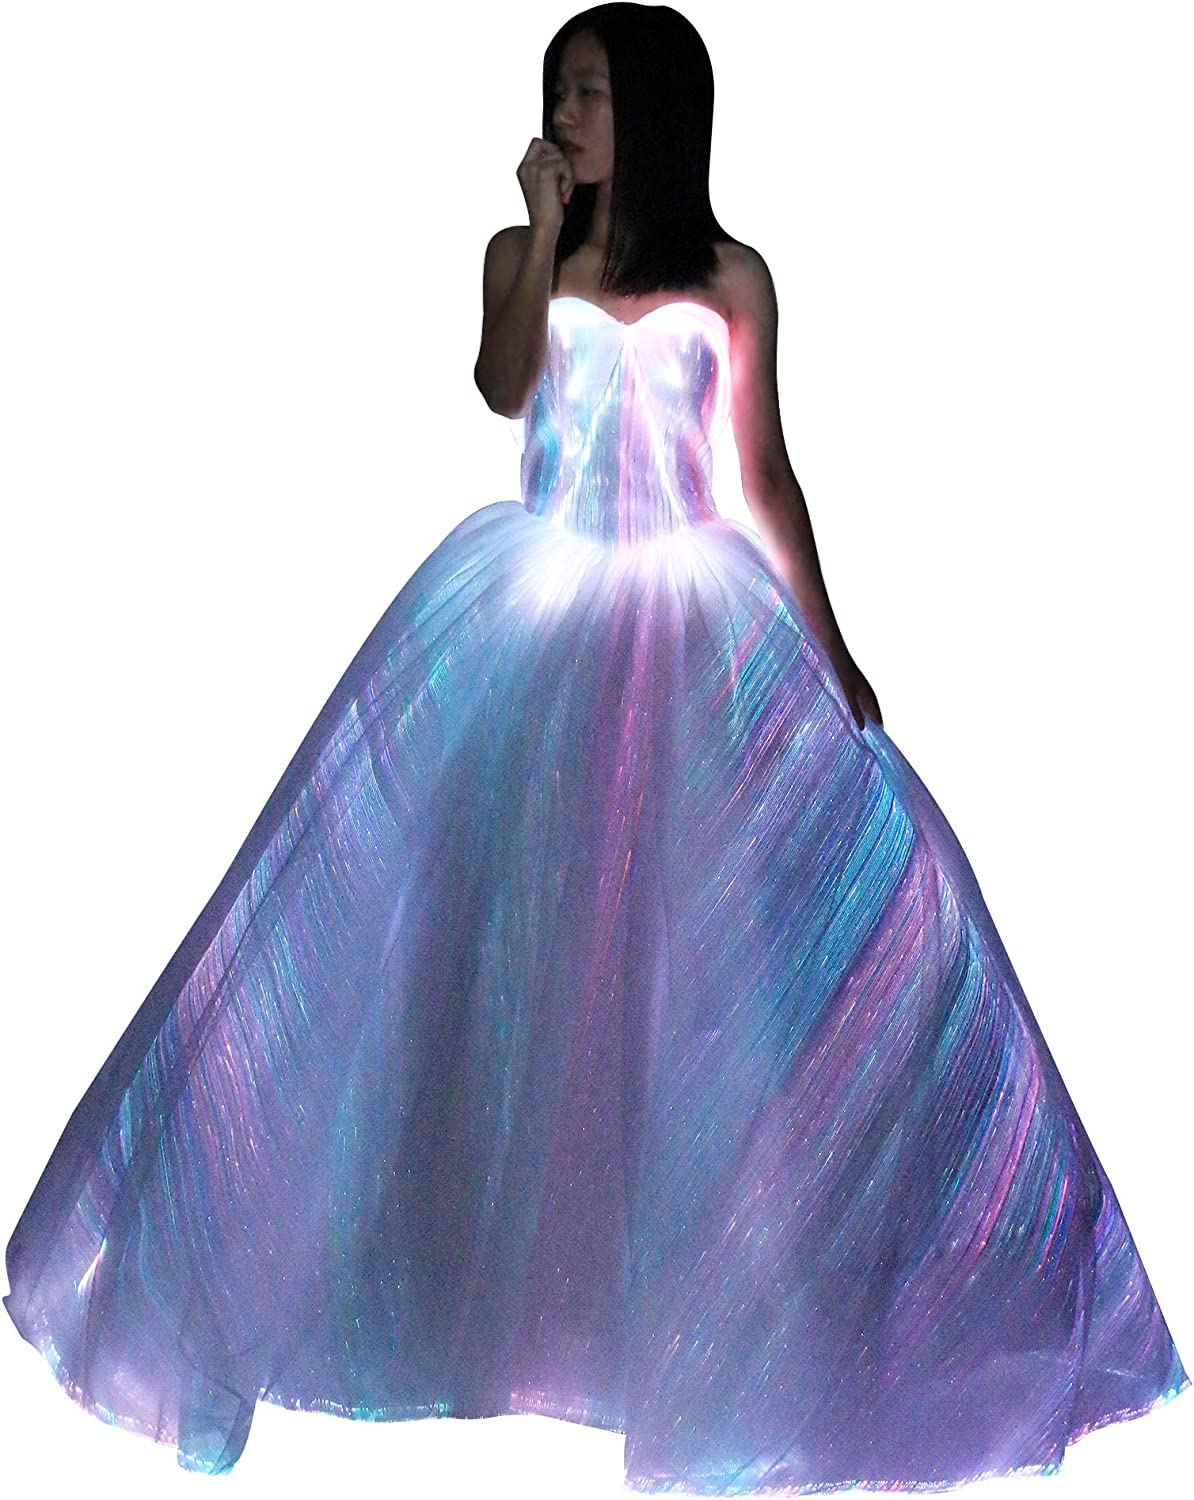 Led Light Up Fiber Optic Formal Luxury Glowing Party Wedding Dress Luminous Bridal Gown At Amazon Women S Clothing Store,Wedding Guest Fashionable Modern Indian Wedding Dresses For Girls